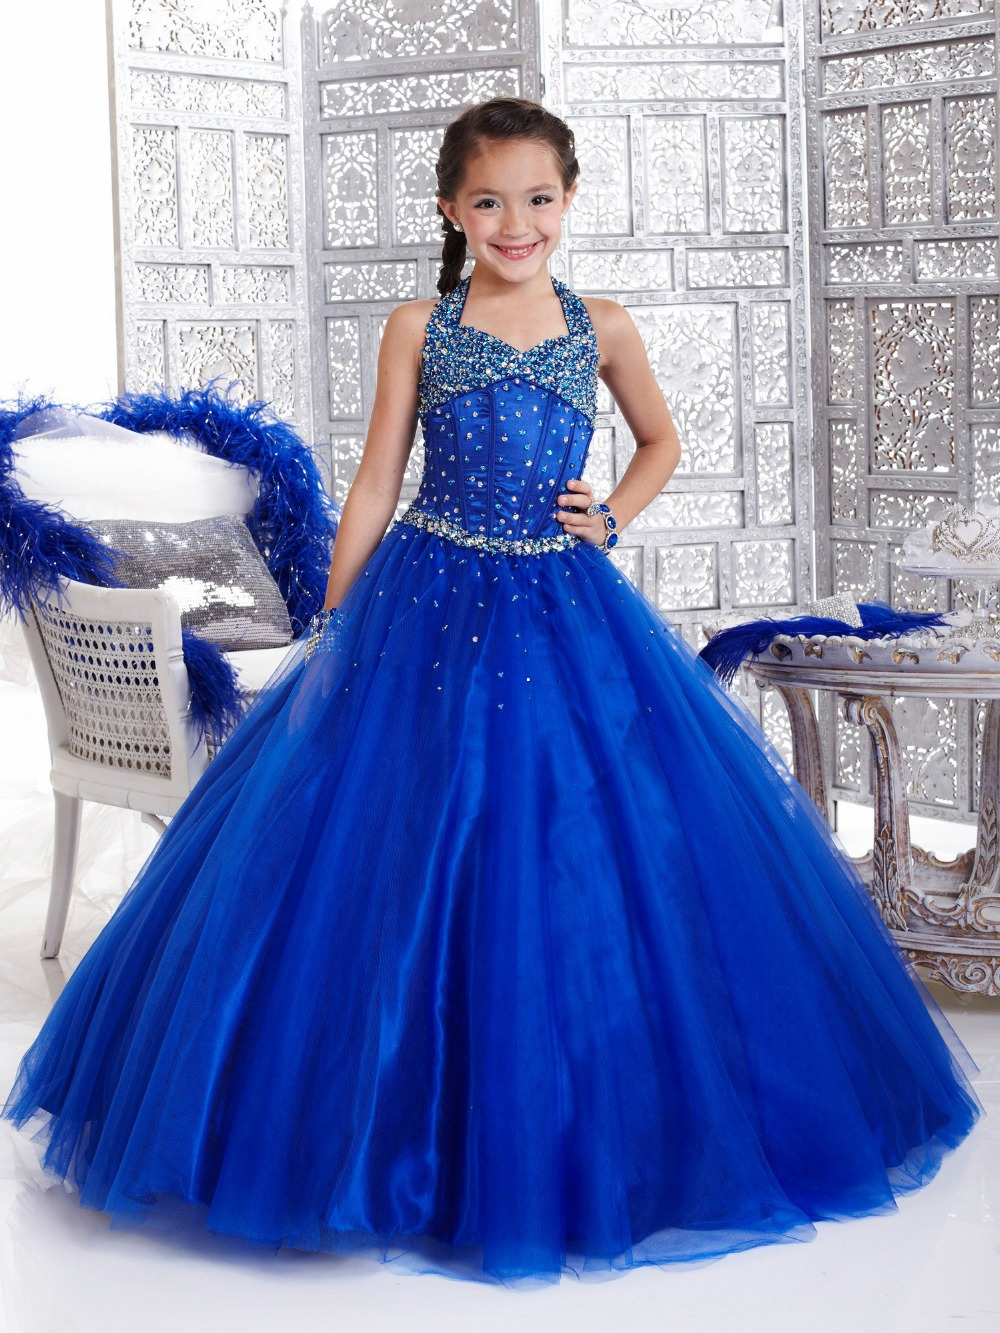 Bright Royal Blue Tulle Beads Flower Girl Dresses Princess Dresses  Pageant Party Dress Custom Made Size 2-6 8 10 12 14 F18174 0bc4f4c93fb4